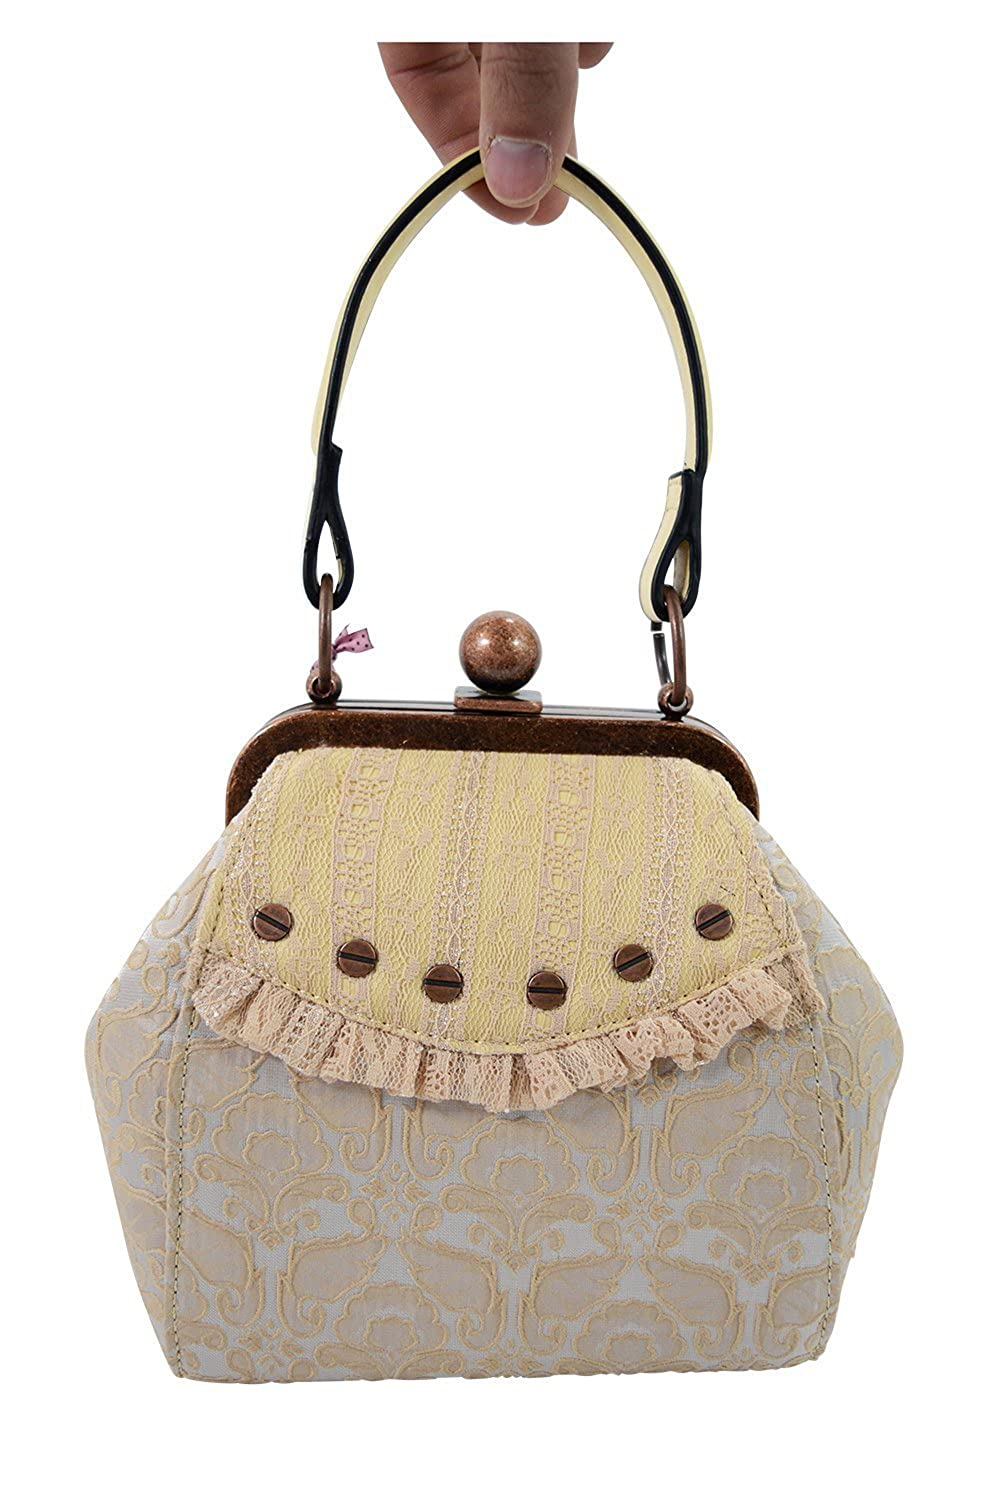 1950s Handbags, Purses, and Evening Bag Styles Banned Victorian Steampunk Jacquard Fabric Antique Large Clasp Small Purse $49.00 AT vintagedancer.com